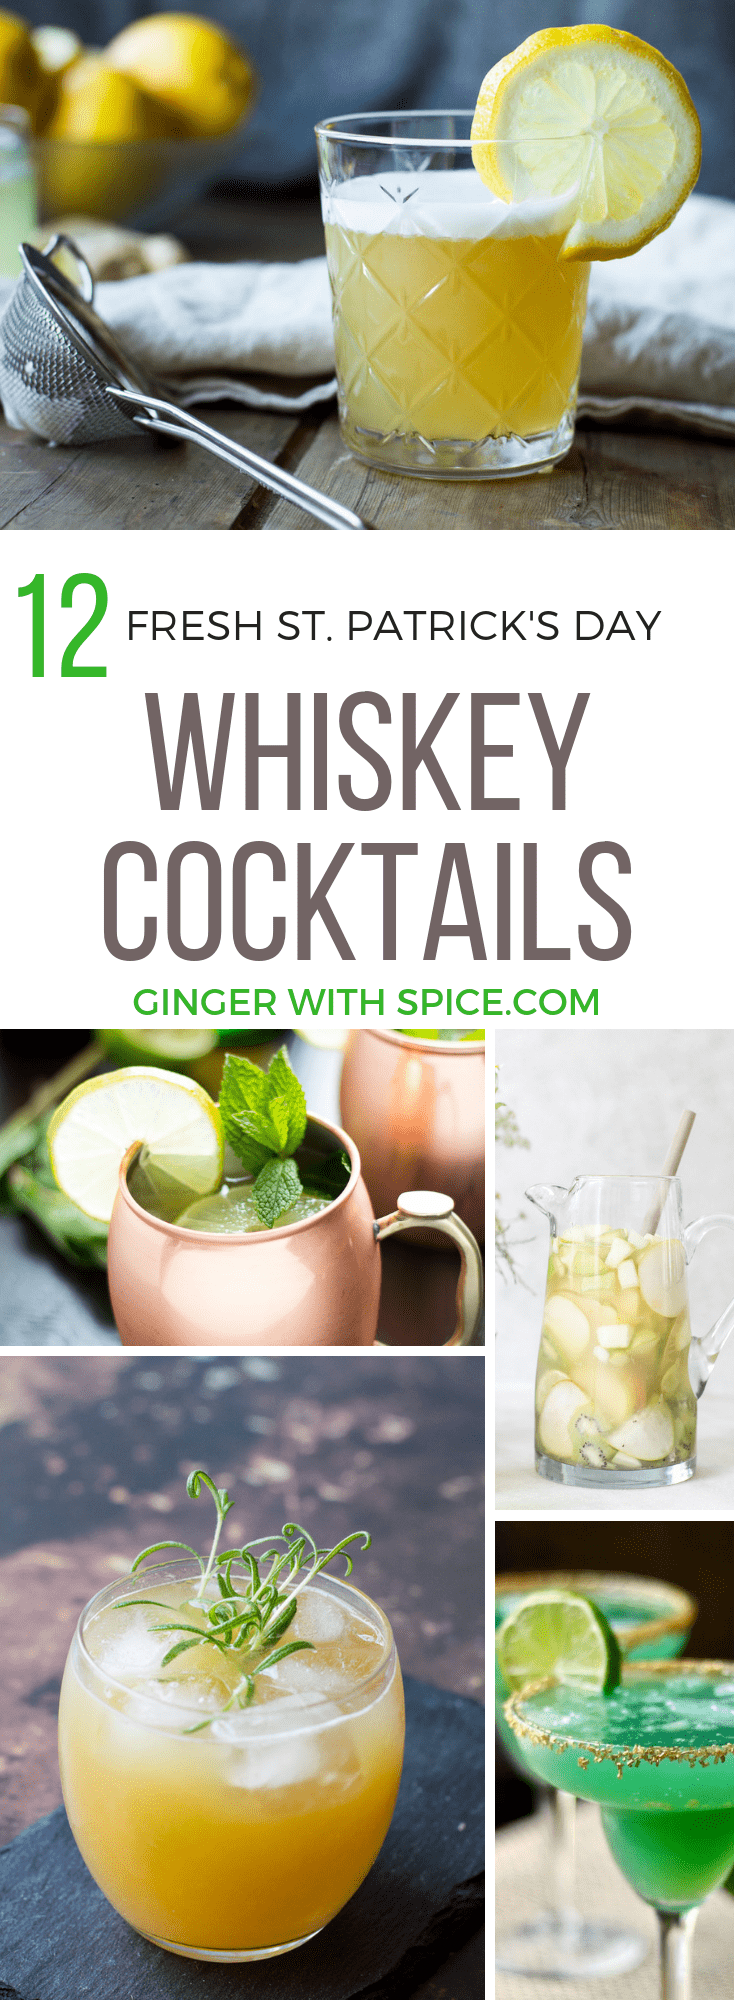 Pinterest pin for blog post 12 Refreshing Whiskey Cocktails for St. Patrick's Day